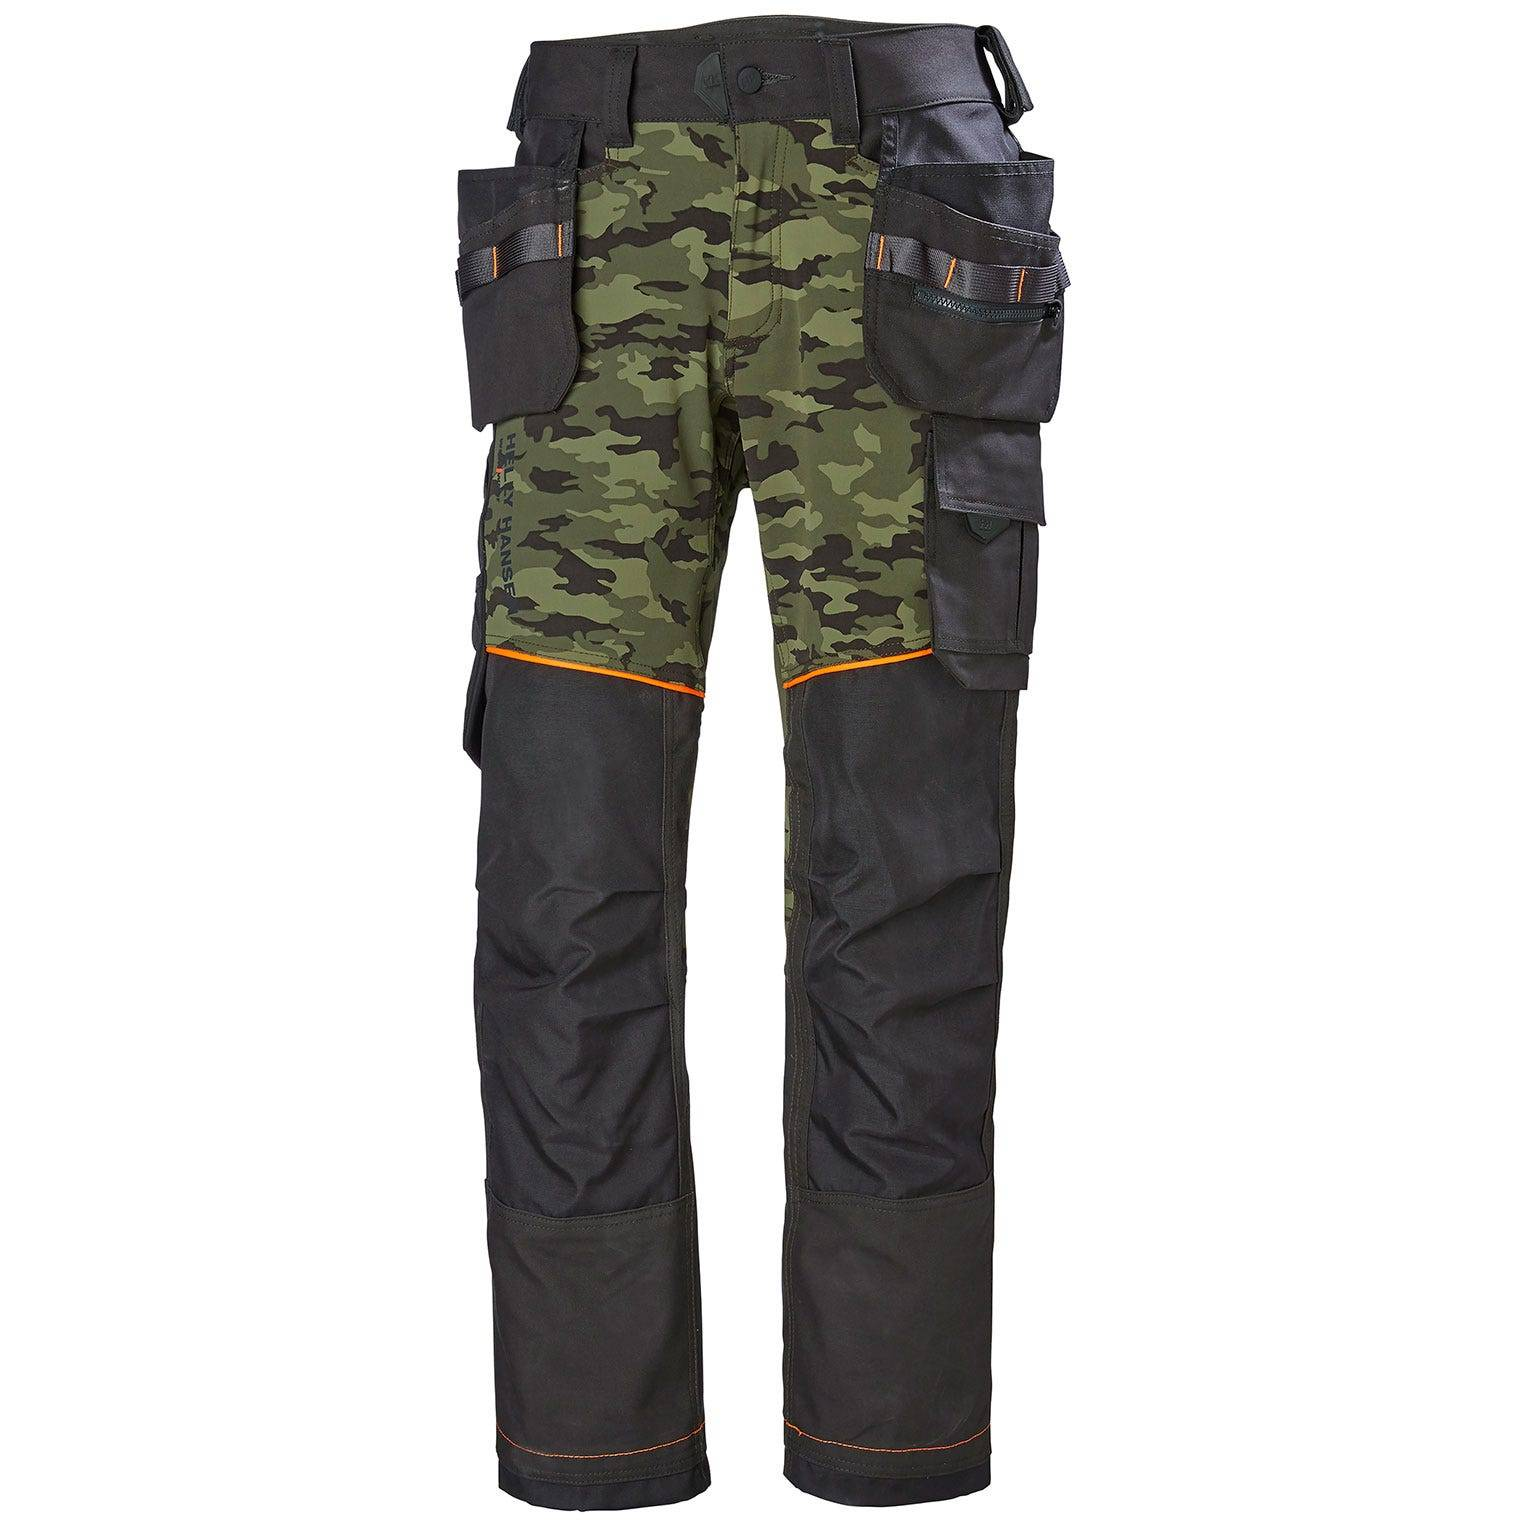 HH Workwear Work Chelsea Evolution Construction Pant C52 Green